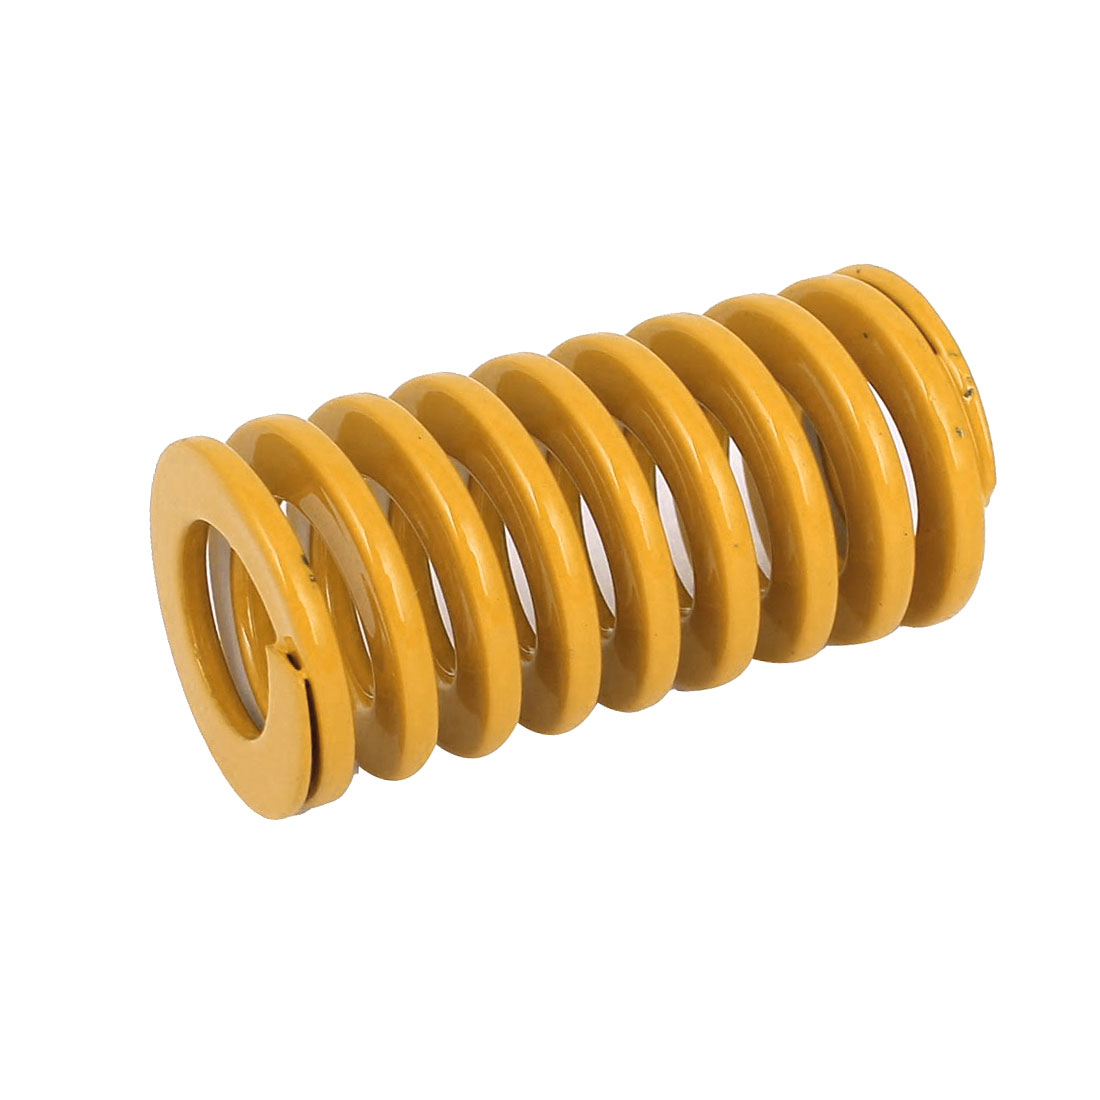 30mm OD 60mm Long Light Load Coil Stamping Compression Mold Die Spring Yellow